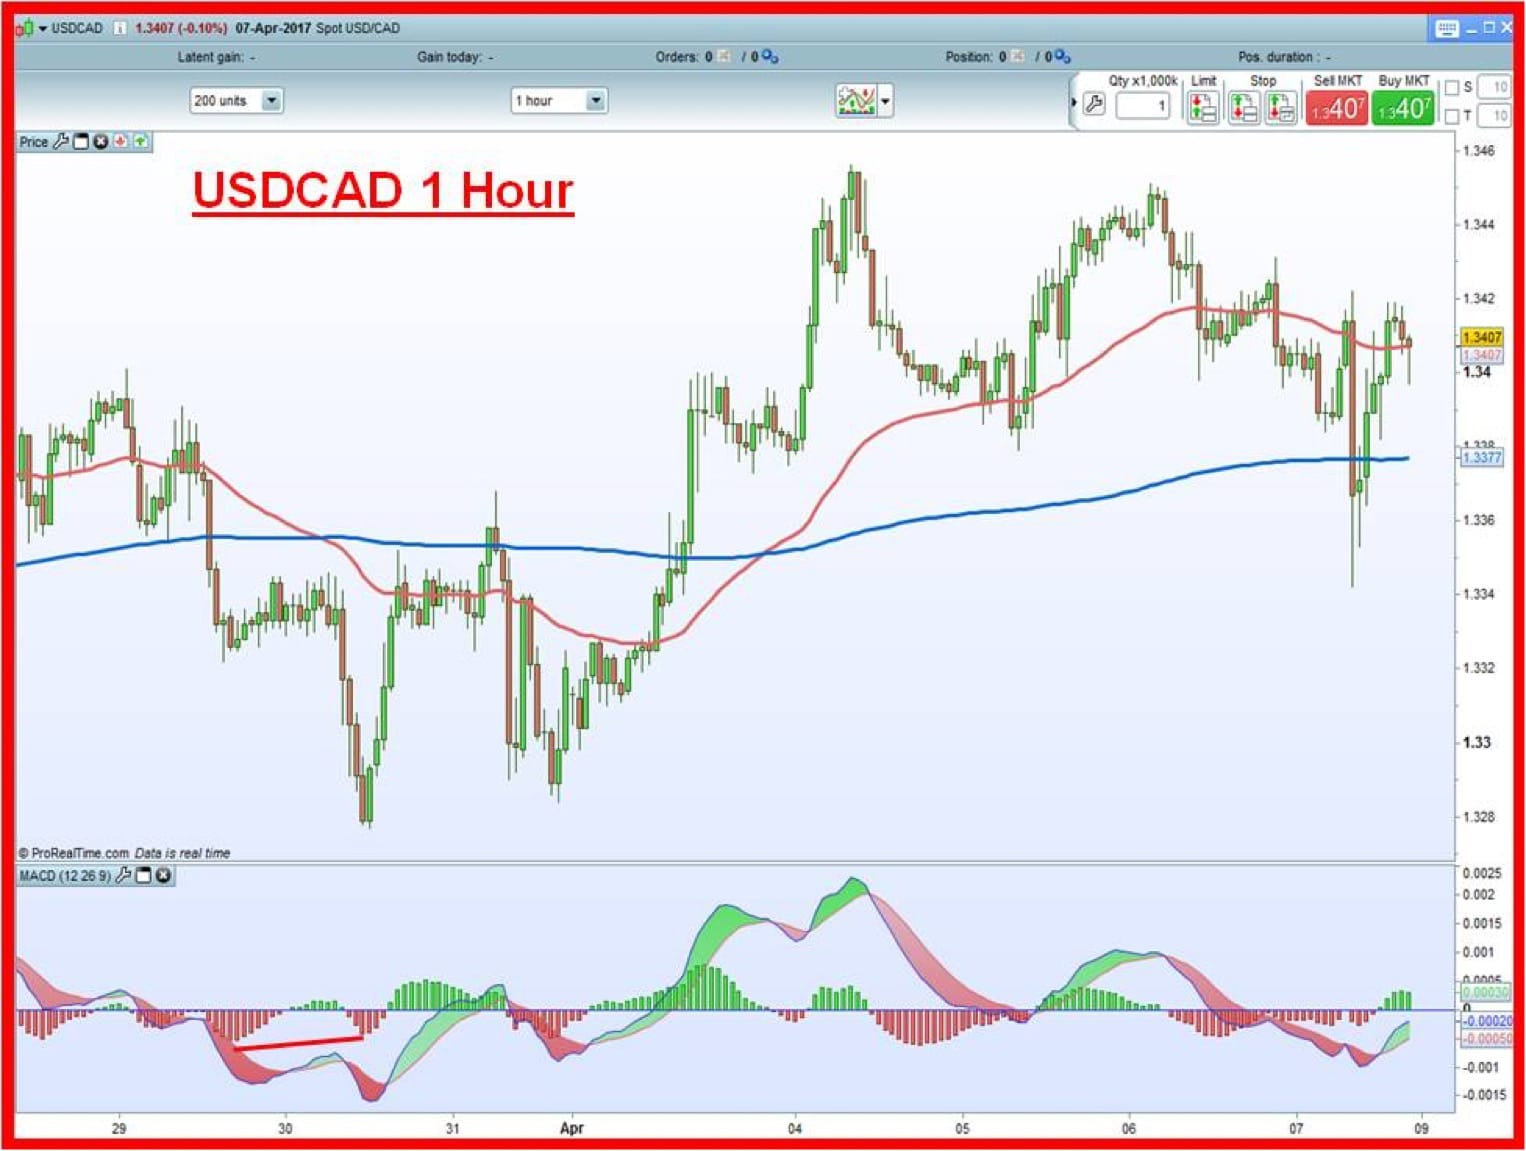 USDCAD 1 hour chart with just 50 and 200 EMAs and MACD.